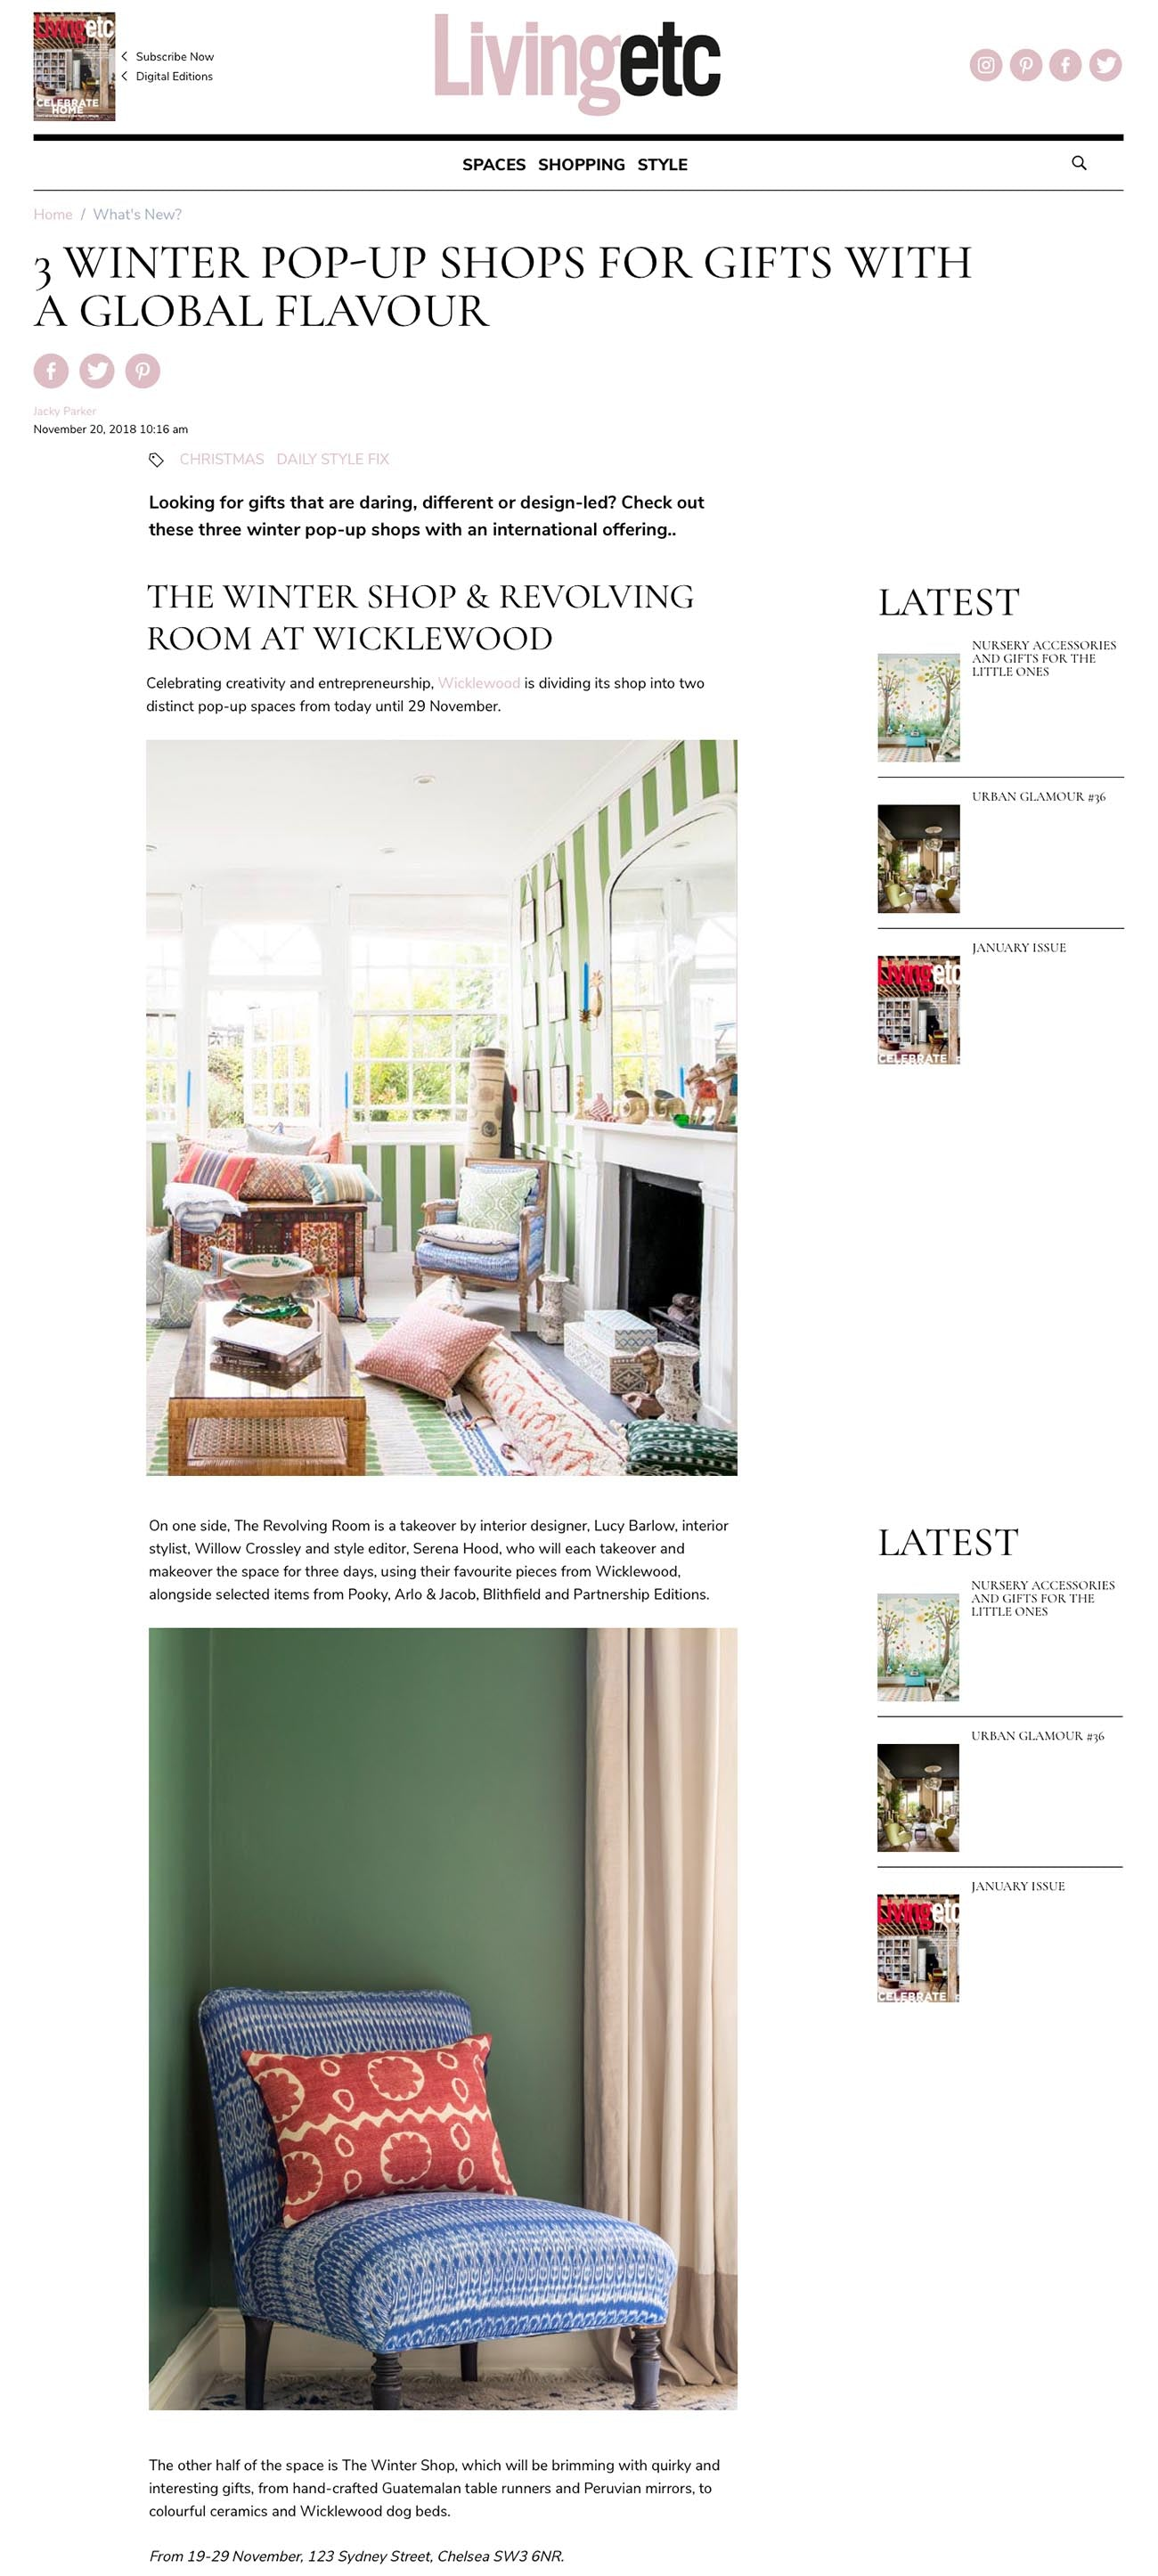 Living Etc. online editorial - 'Three Winter pop up Shops for gifts with Global Flavour' by Jacky Parker featuring Wicklewood Luxury home decor brand